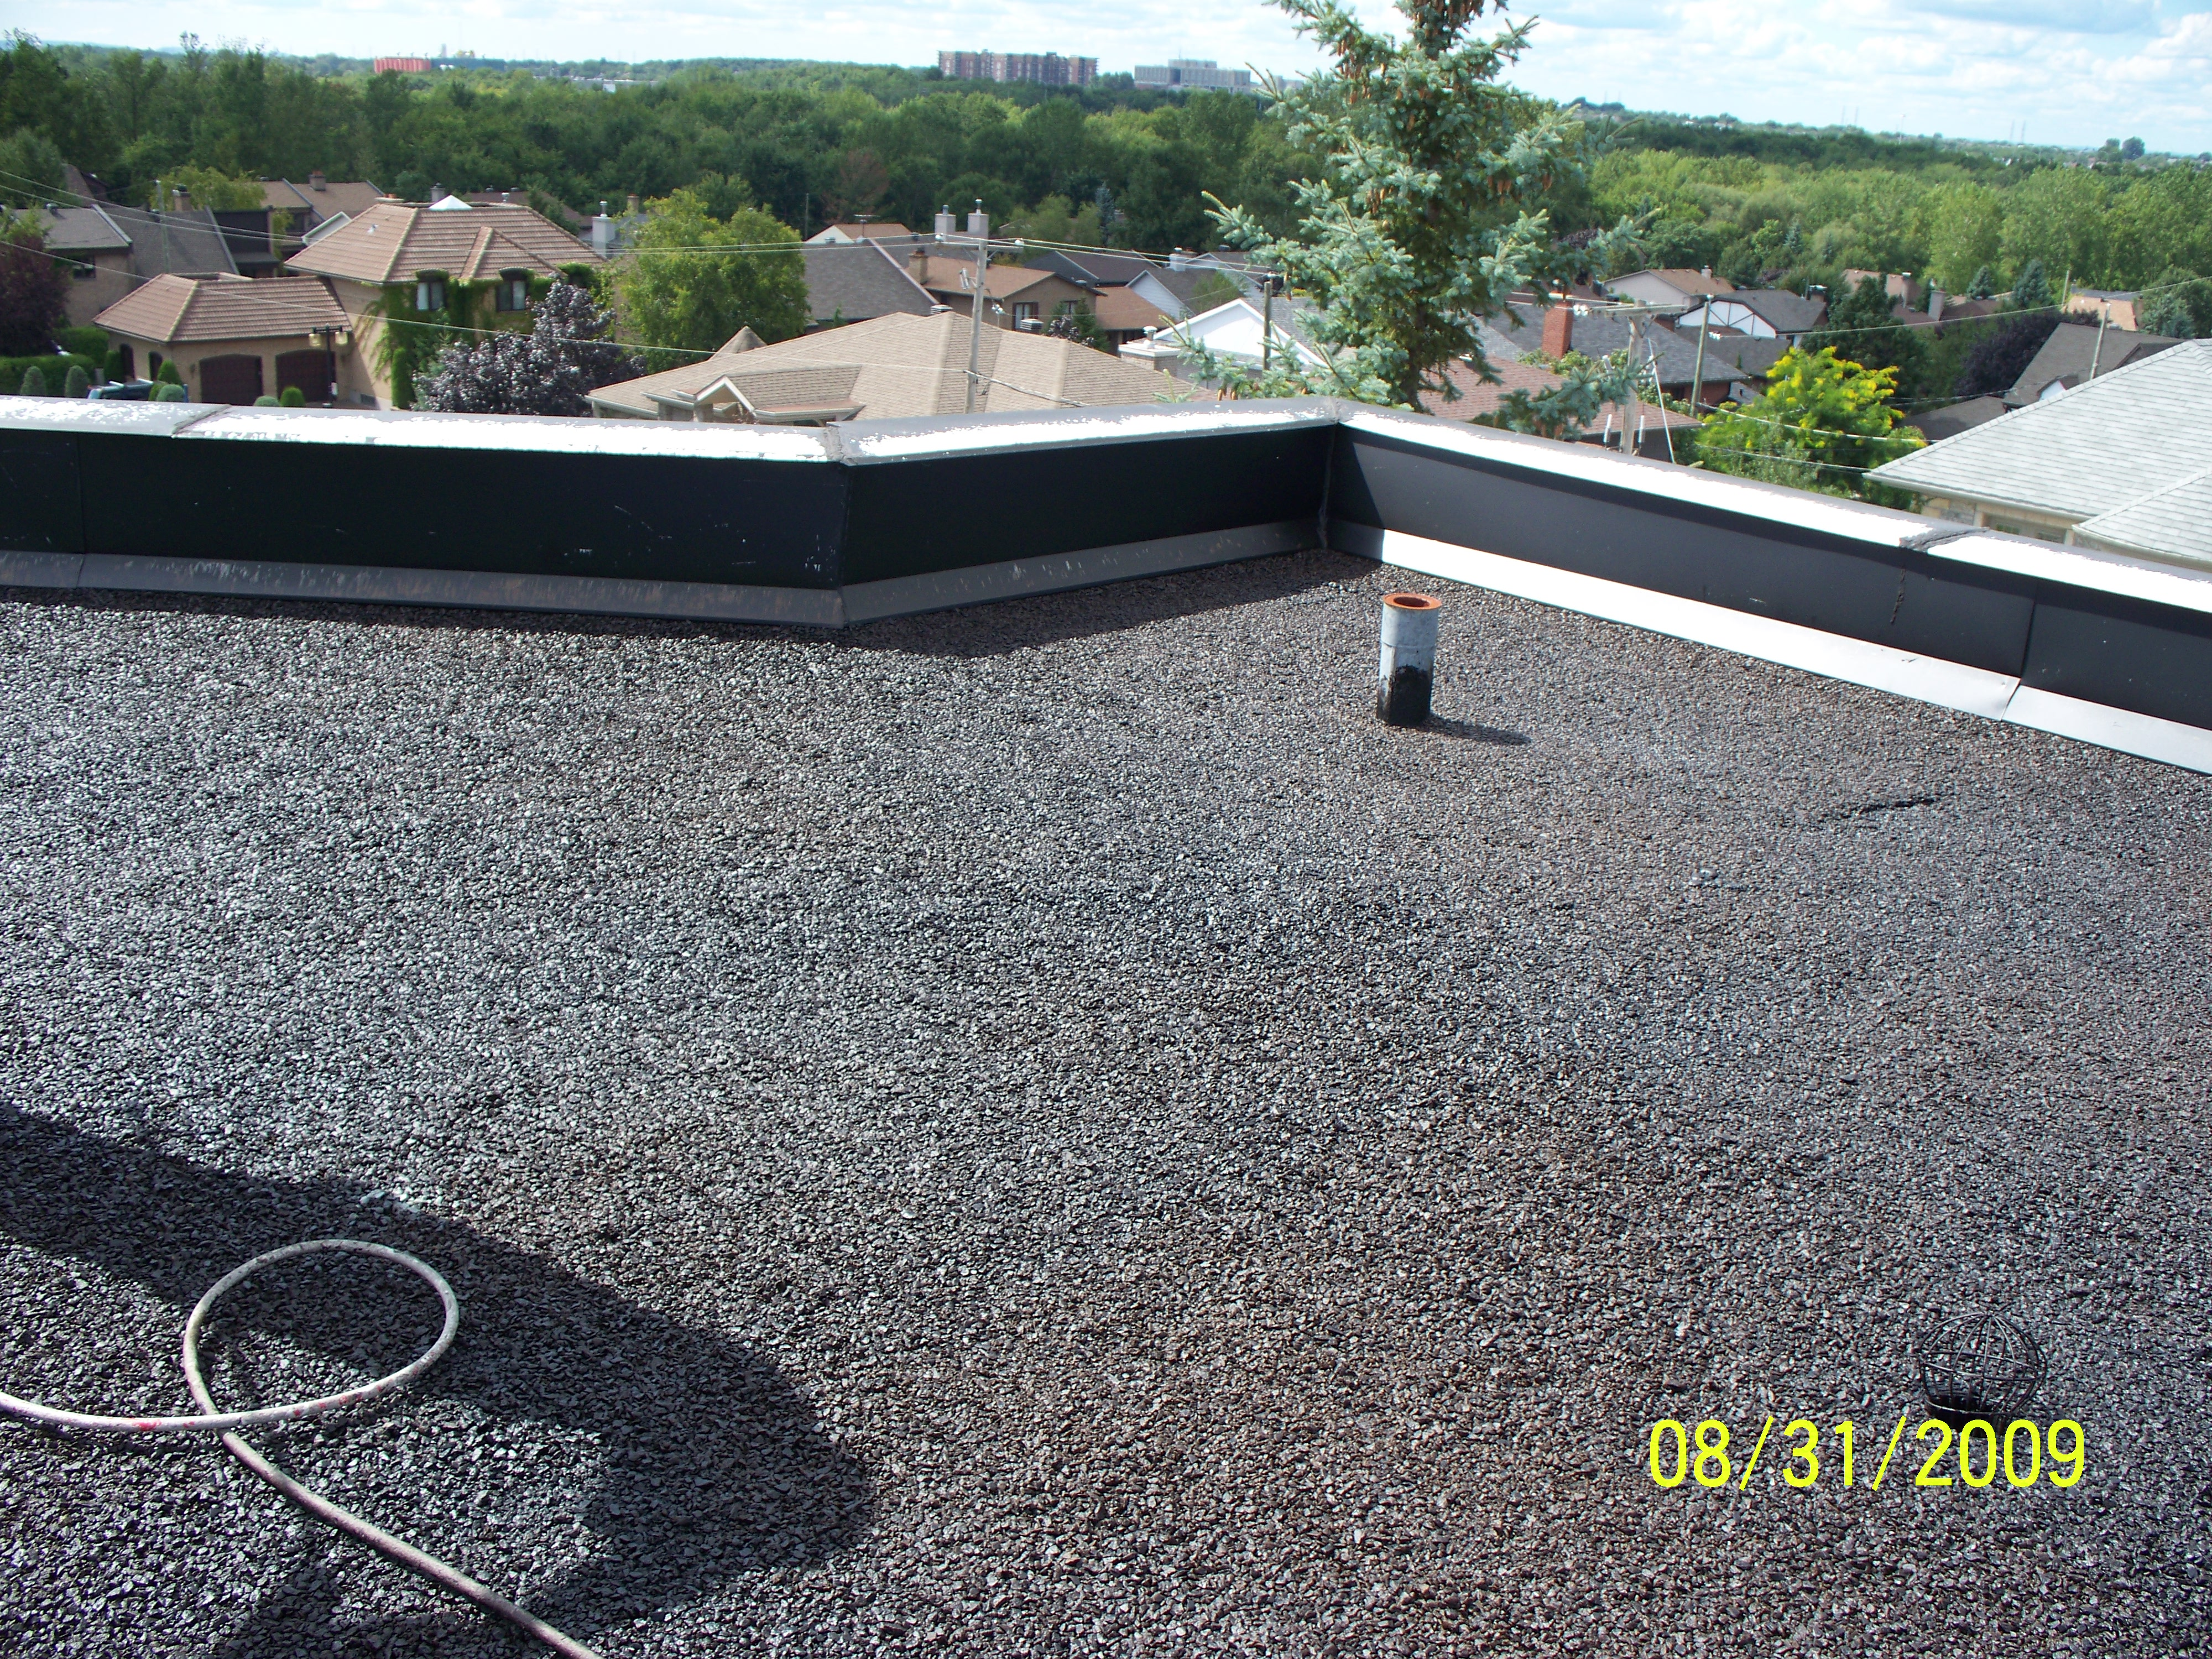 Liquid Rubber Roof Coatings/Commercial Grade - Mario Cinelli Hoouse Montreal Sptember 2009